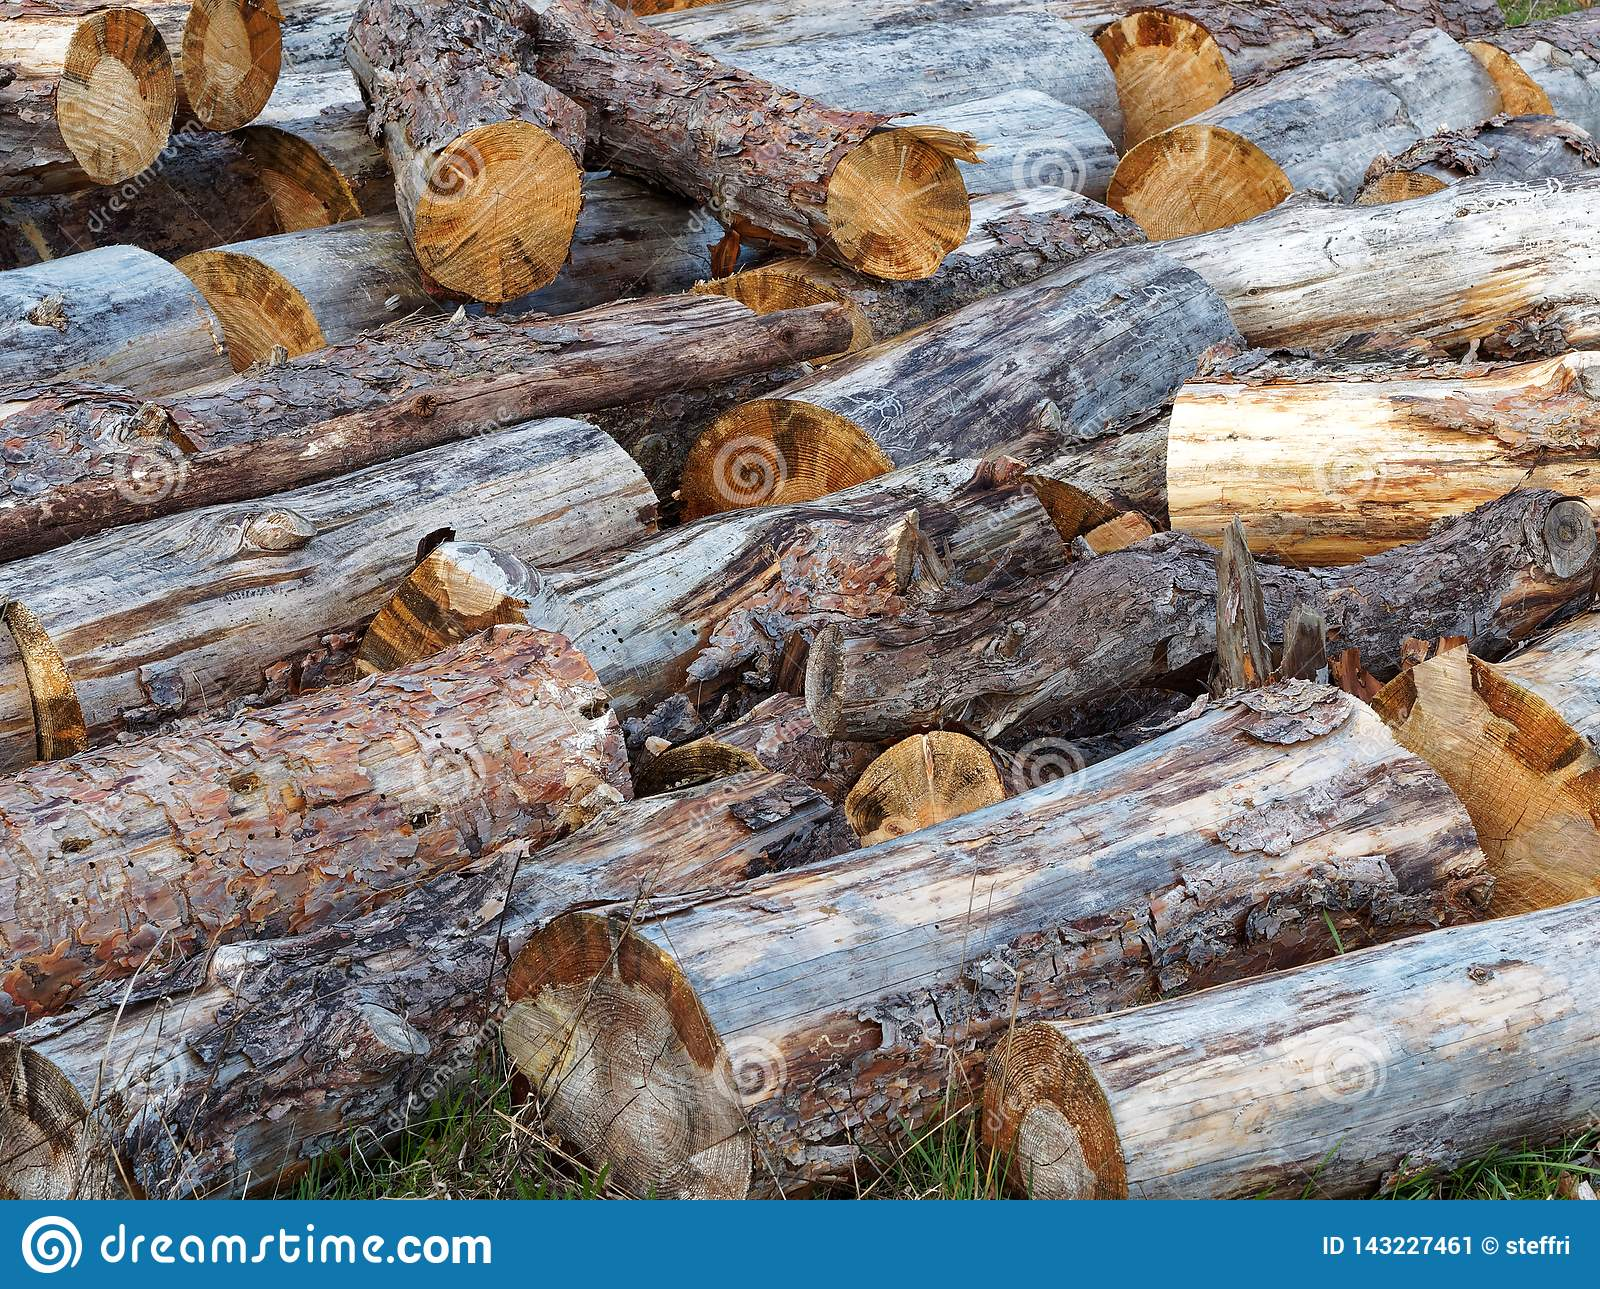 Haphazardly Stacked Pile of Wood Logs